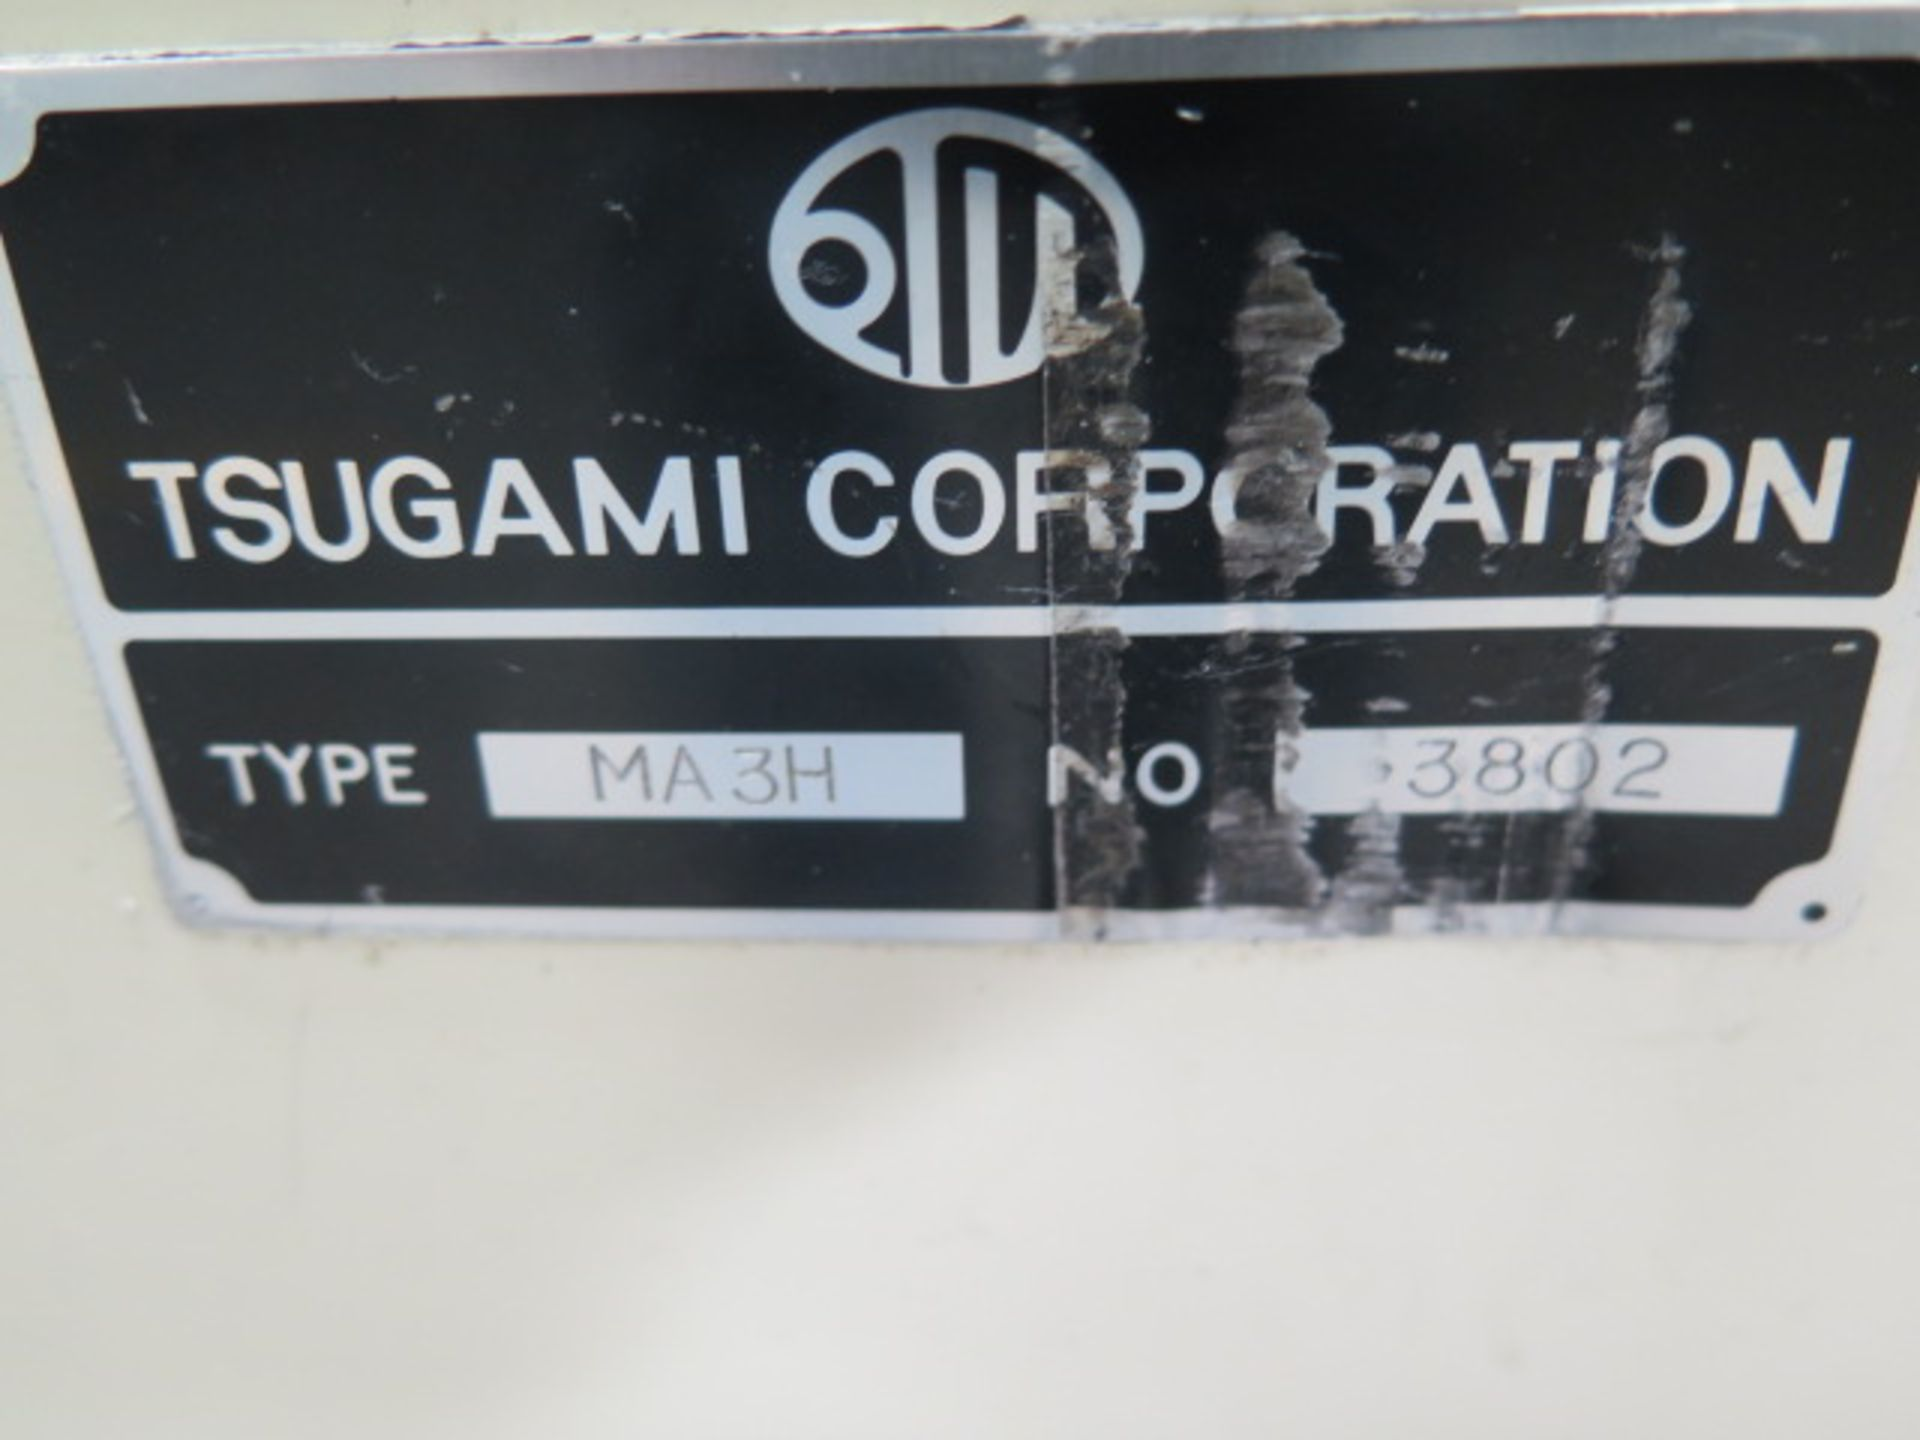 Tsugami MS3.10P Type MA3H 4-Axis 10-Pallet CNC HMC (HAS X-AXIS PROBLEM), SOLD AS IS - Image 20 of 20